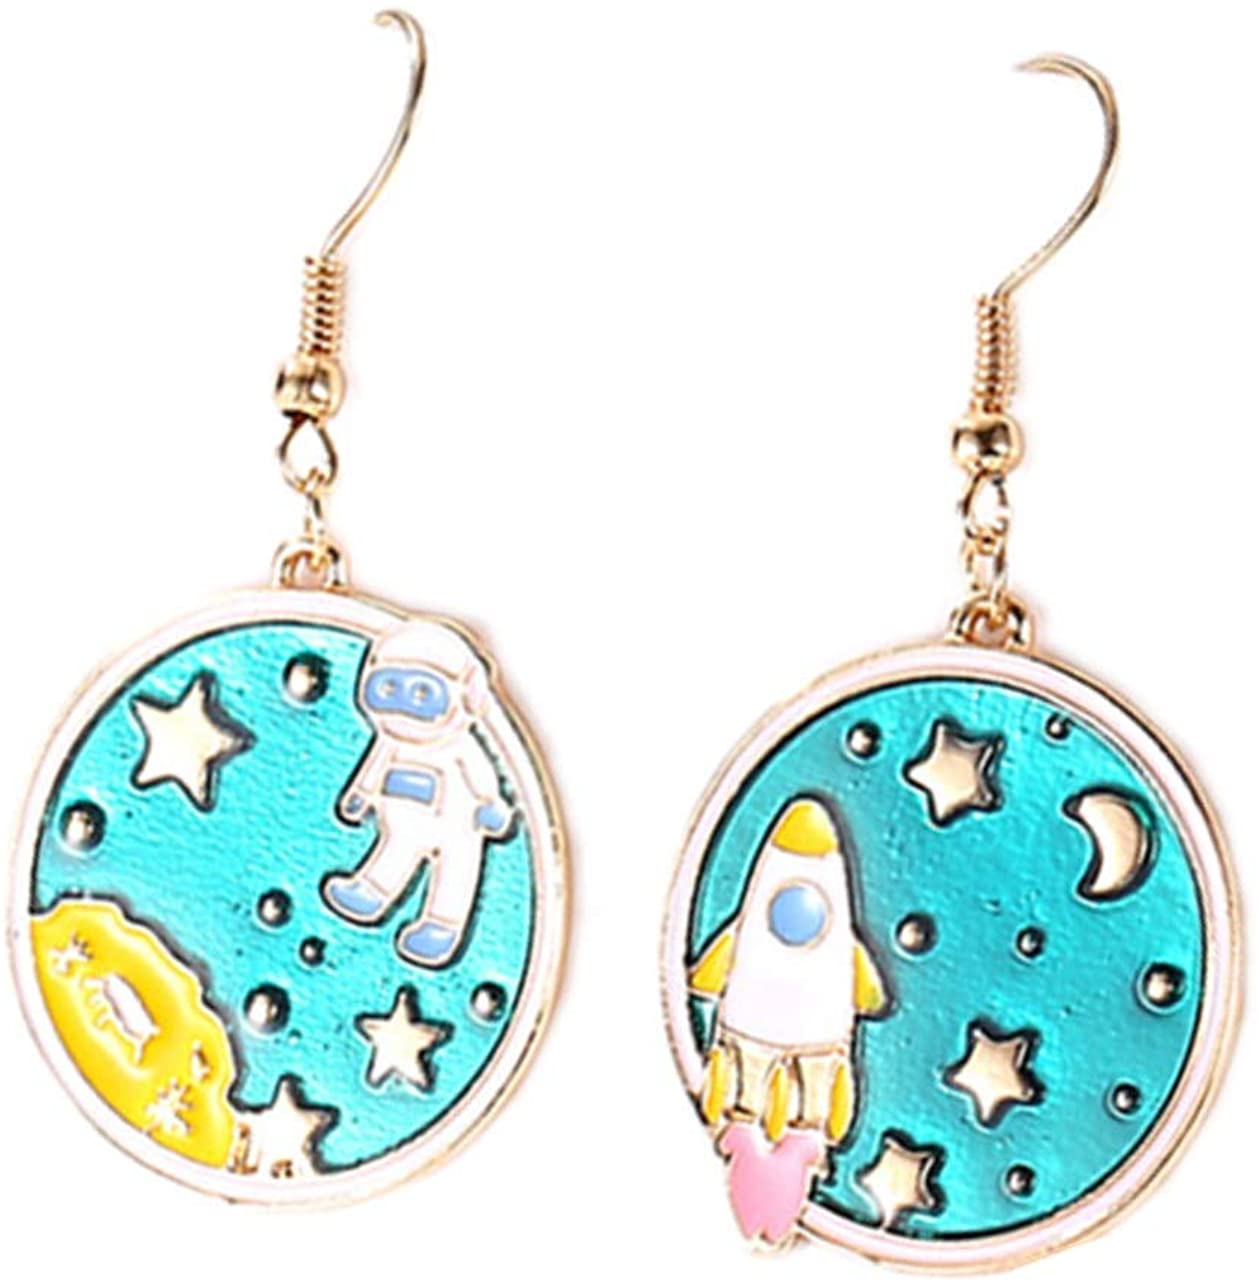 AB Style irregular the Astronaut Spaceman and Rocket Earrings Fluorescent Blue aviator Stars 18K Gold Plated Dangle Earring